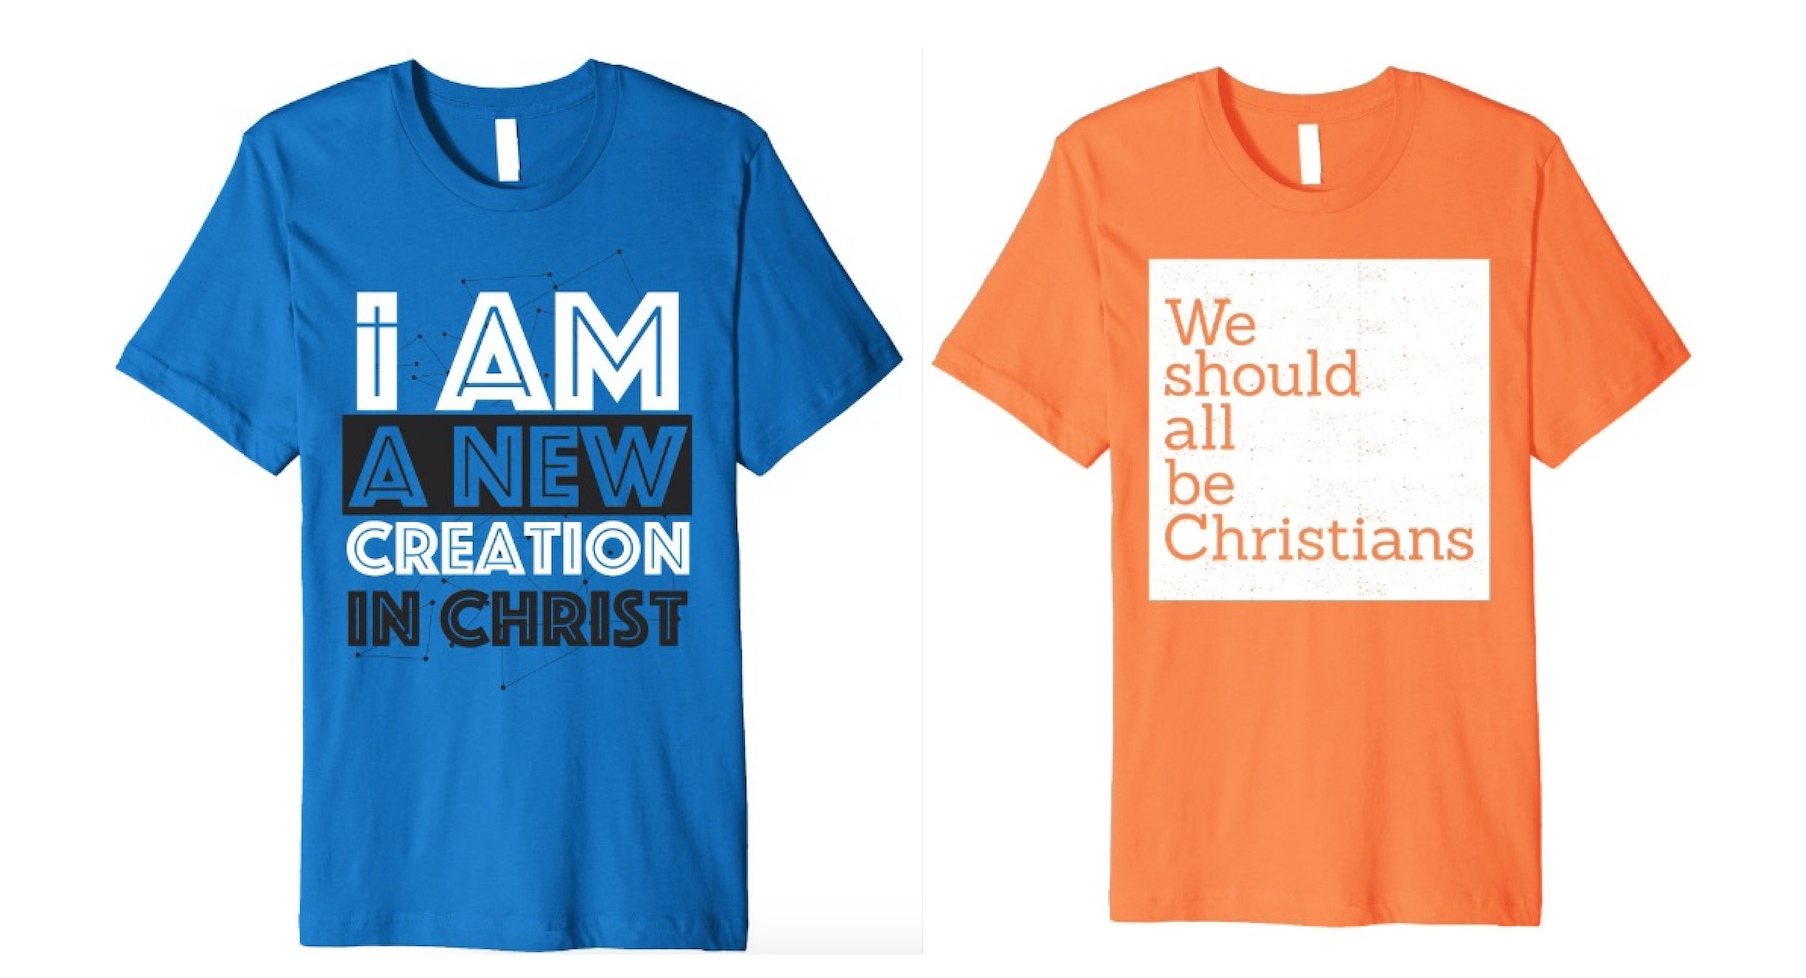 Top 10 best christian t-shirt designs - Cool Gospel t-shirts